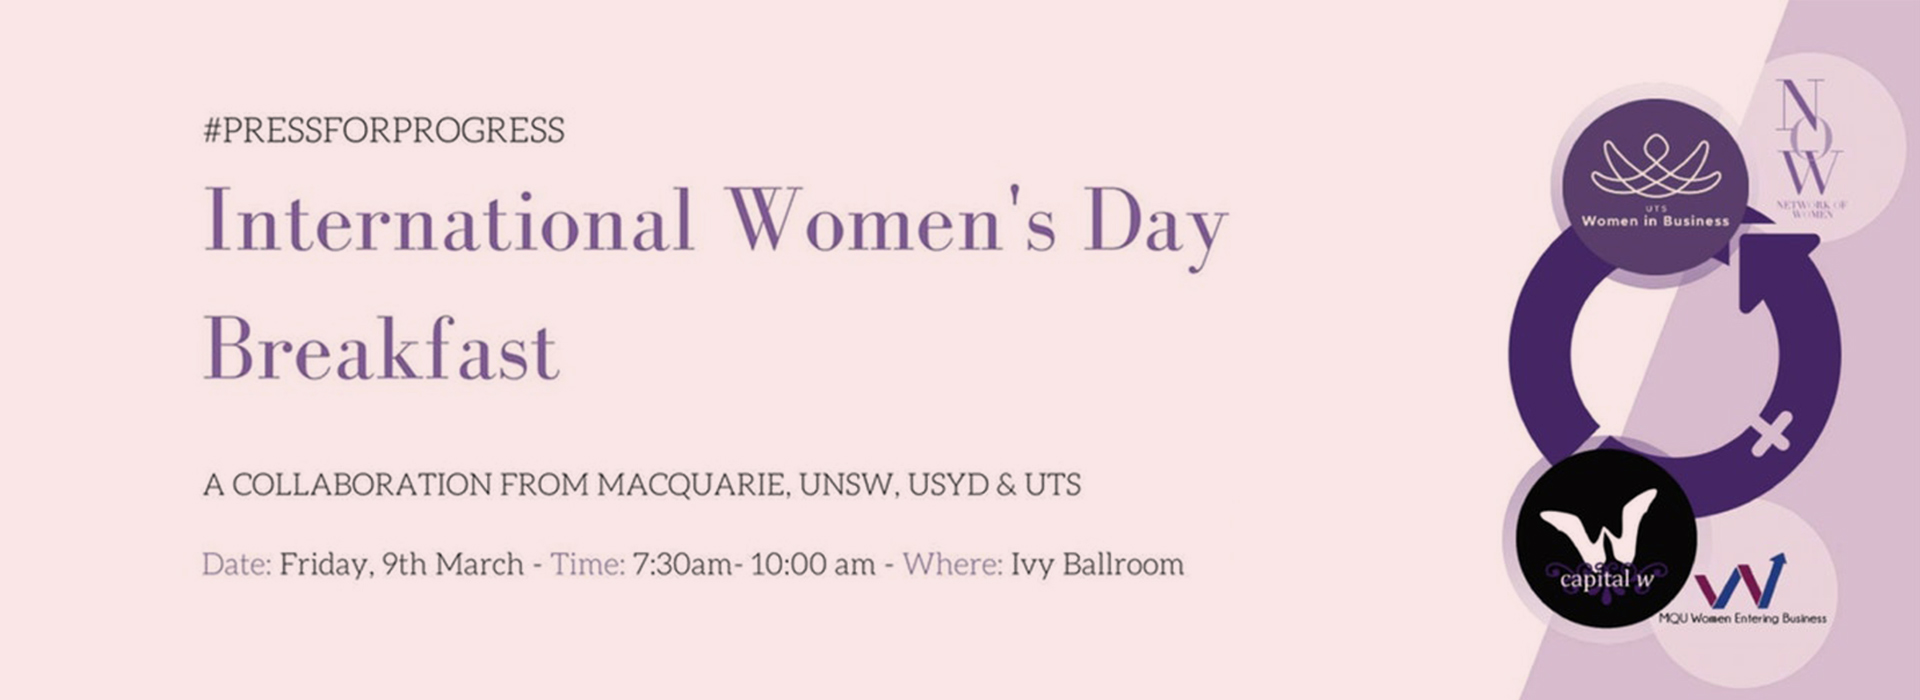 Banner image reads: Press for Progress hashtag, International Women's Day Breakfast. A collaboration from Macquarie, UNSW, USYD and UTS. Date Friday 9th March. Time: 7:30am to 10:00am.. Where: Ivy Ballroom.